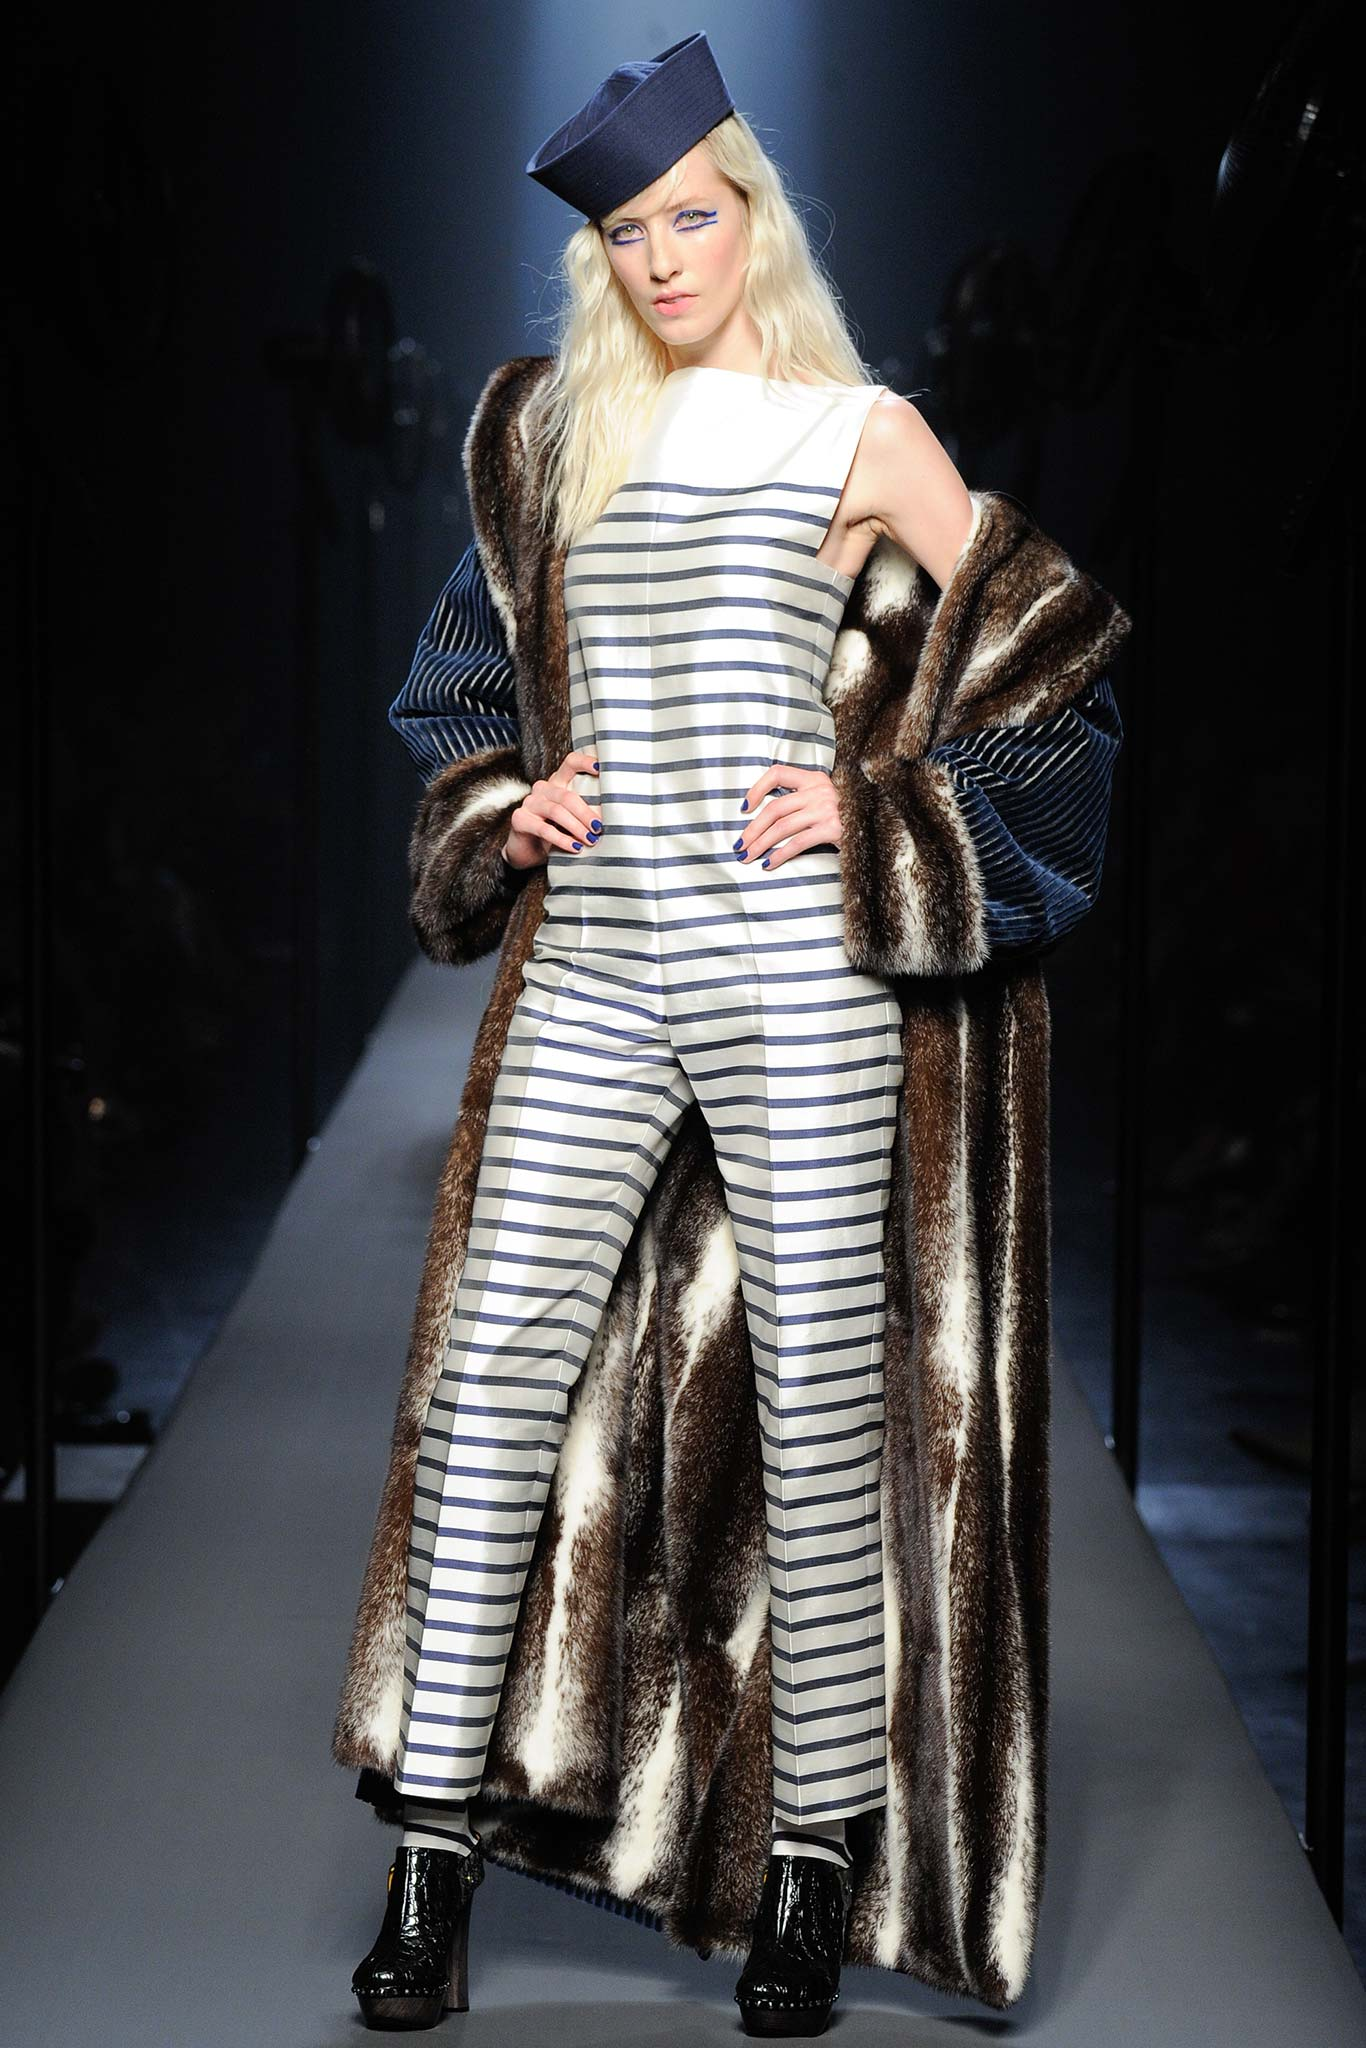 Jean paul gaultier haute couture f w 2015 paris graveravens for Jean paul gaultier clothing